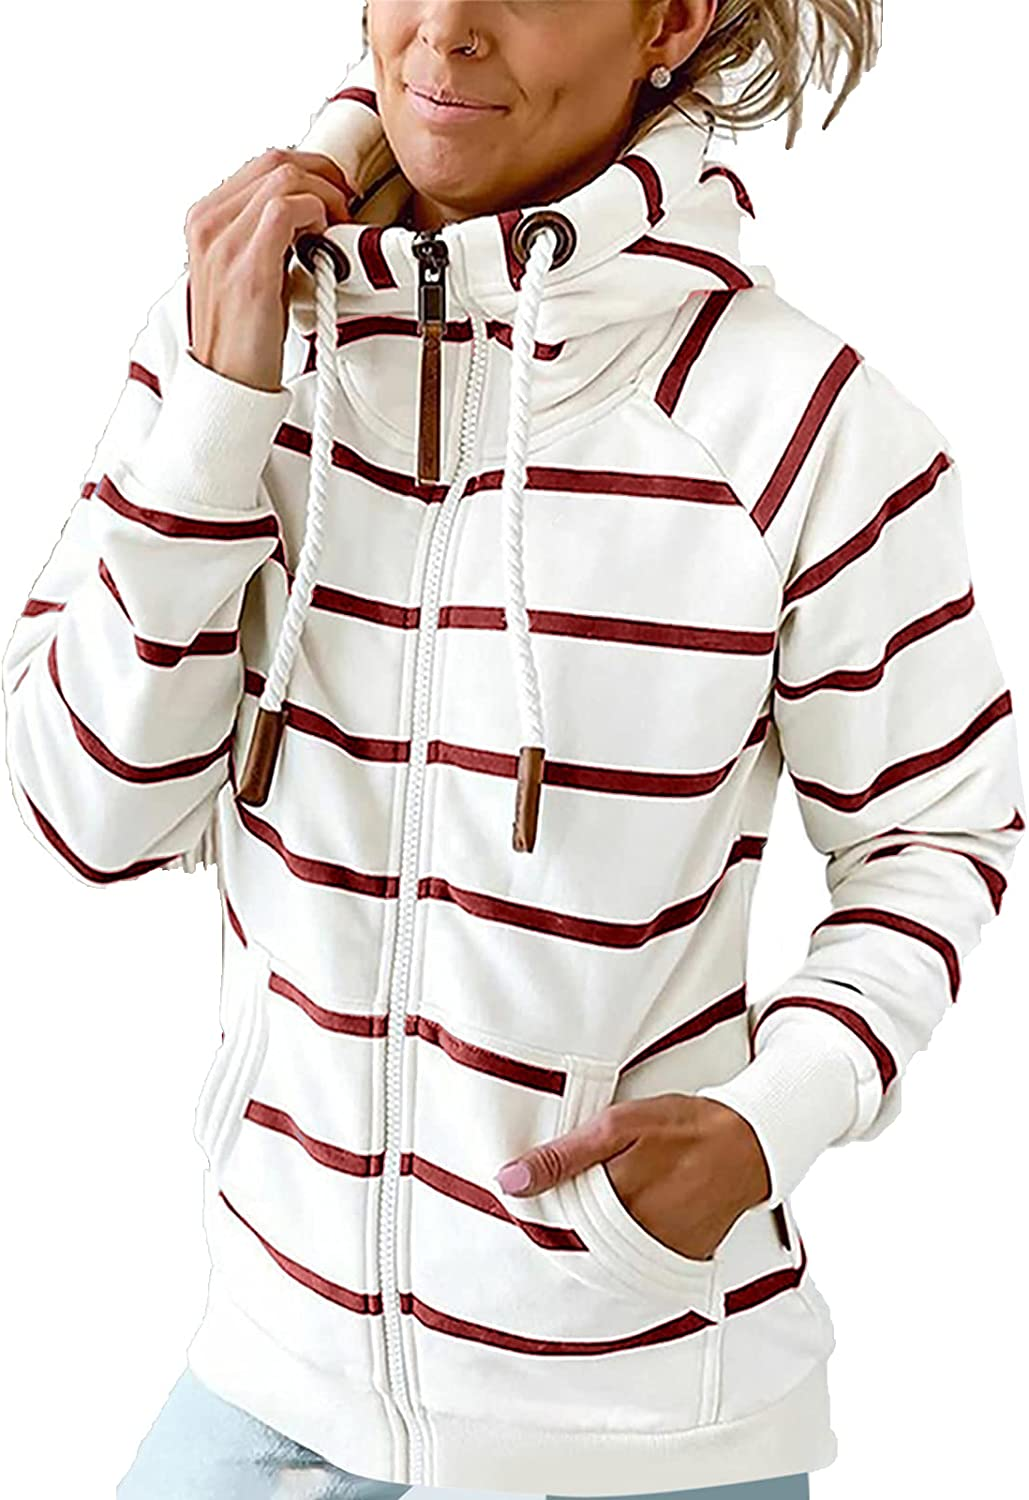 Women's Zipper Turtleneck Special OFFicial mail order price Hoodies Drawstri Casual Printed Stripe